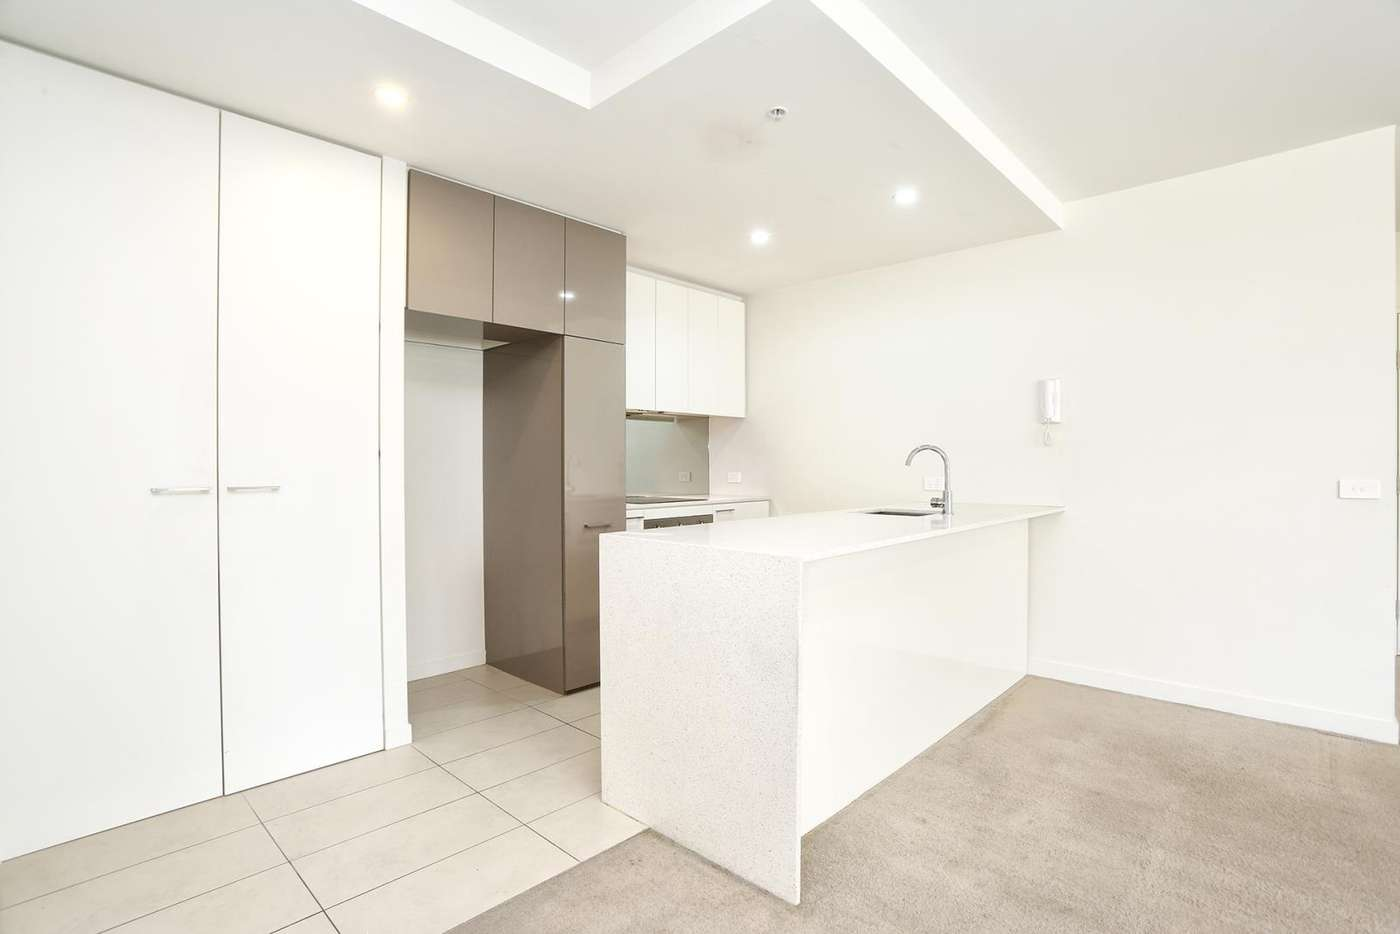 Main view of Homely apartment listing, 4001/189 Weston Street, Brunswick East VIC 3057